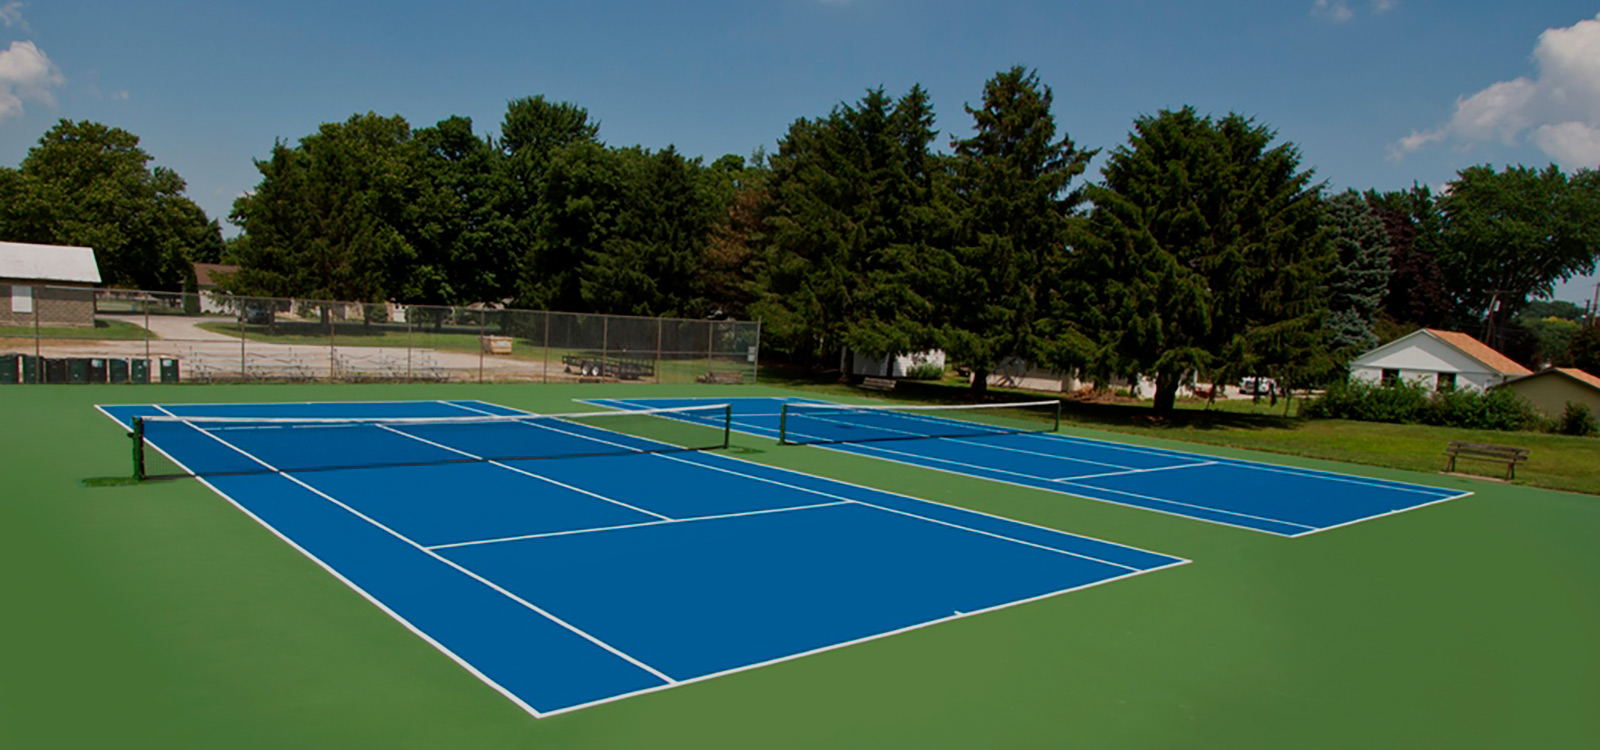 mik-a-seal coatings for tennis court